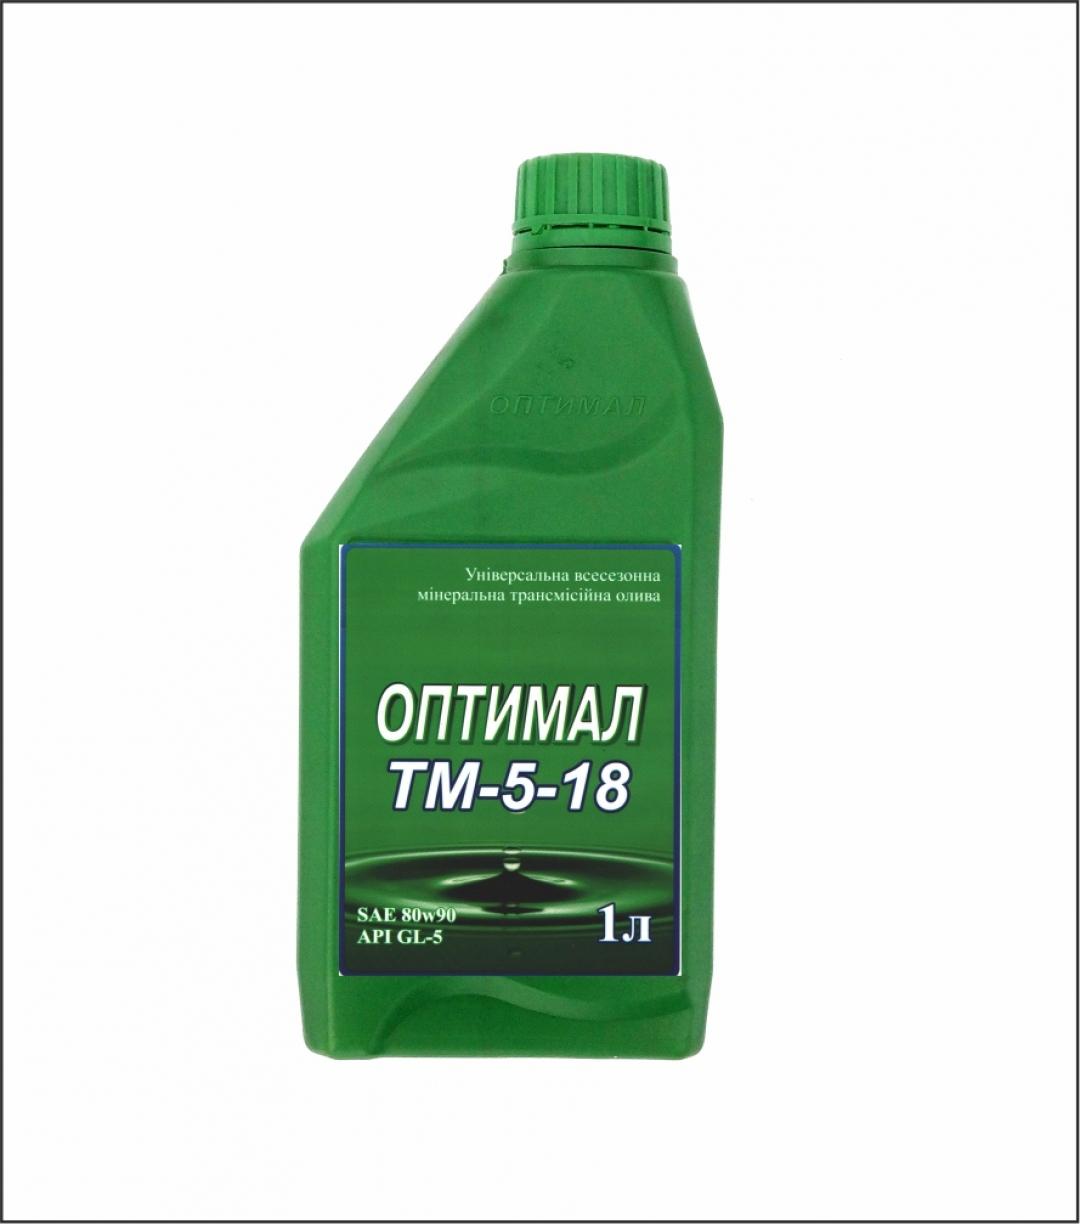 OPTIMAL ТМ-5-18 SAE 80W-90 - 8529